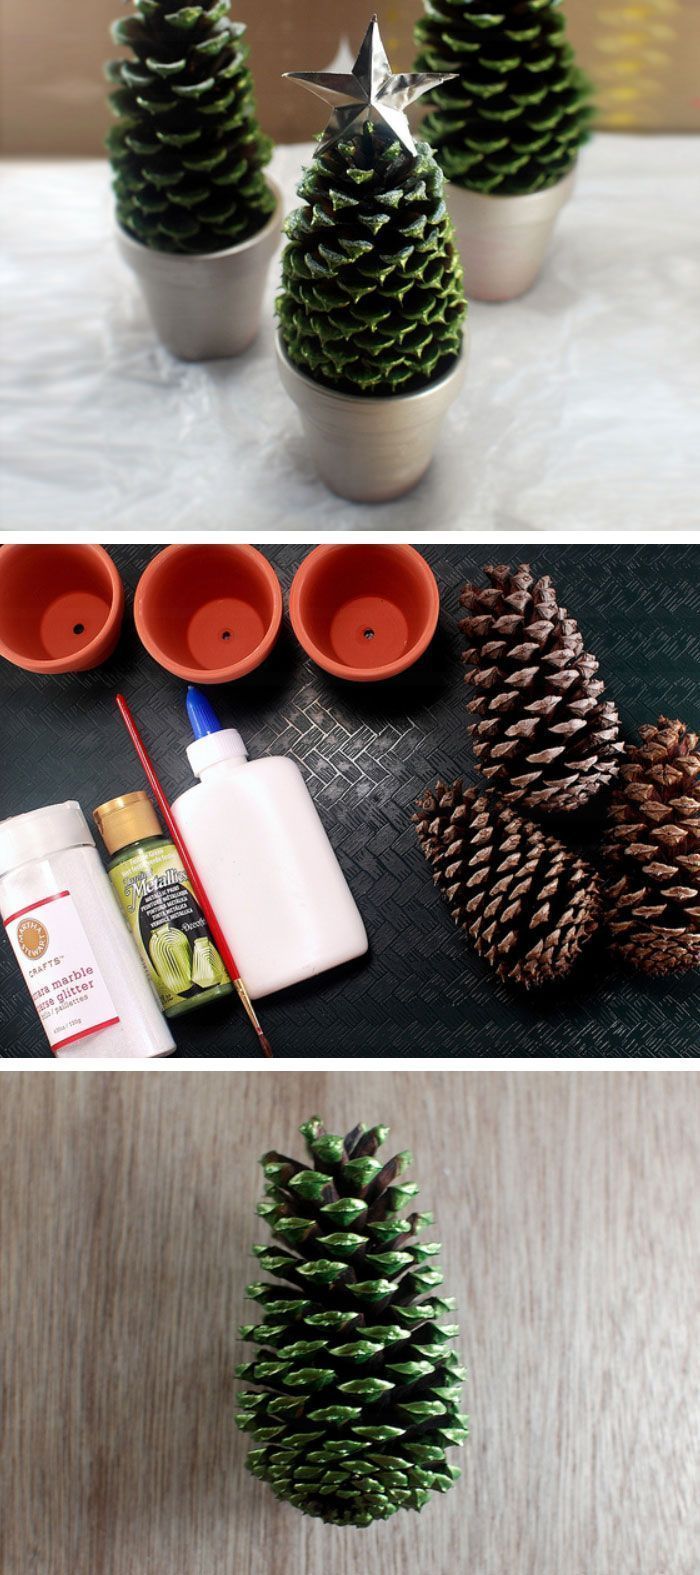 Making christmas decorations at home - 22 Budget Christmas Decor Ideas For The Home